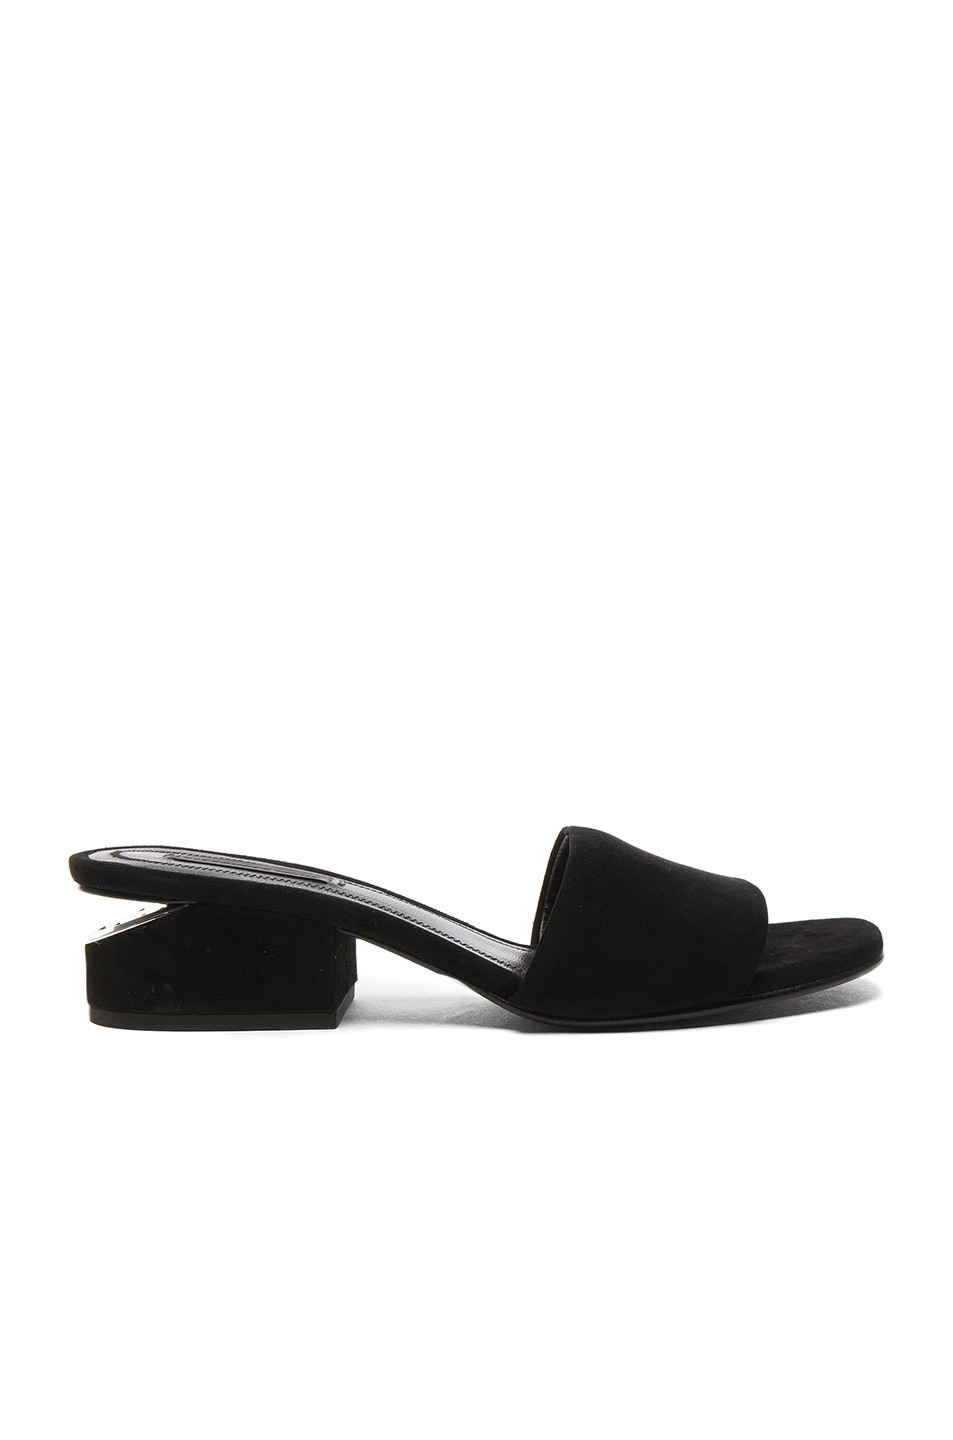 Image 1 of Alexander Wang Suede Lou Slides in Black